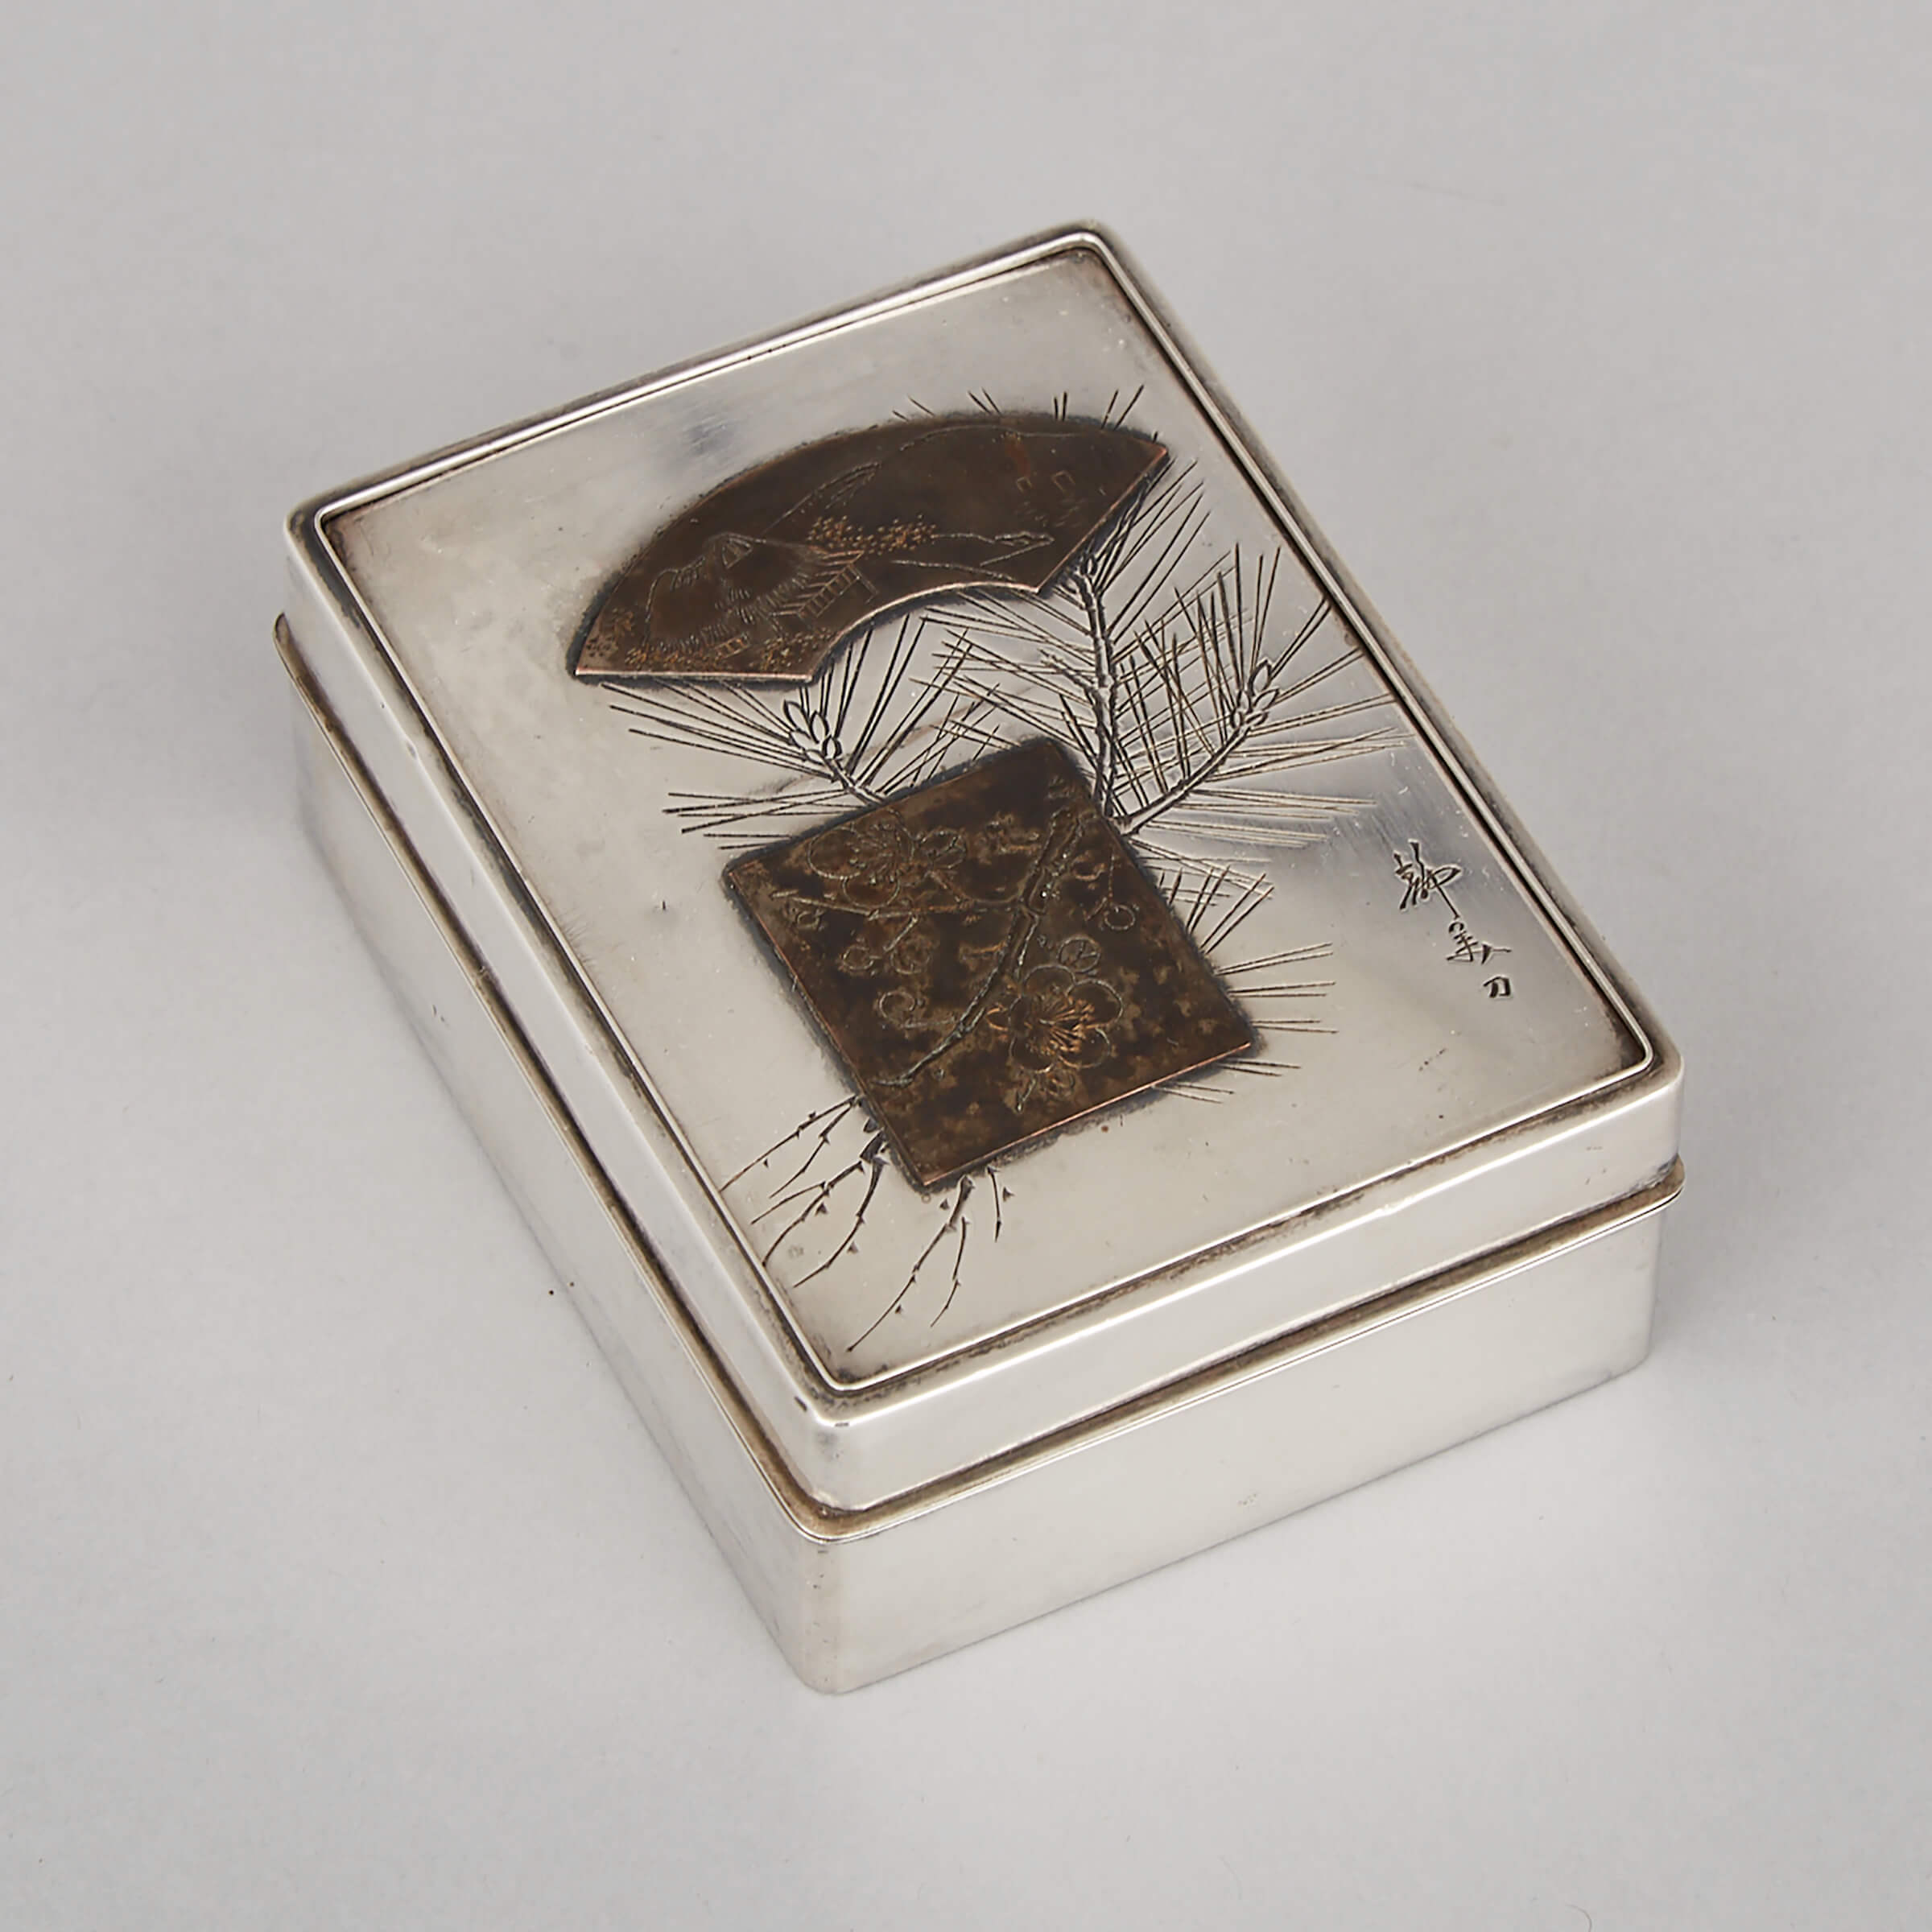 A Japanese Silver Cigarette Case